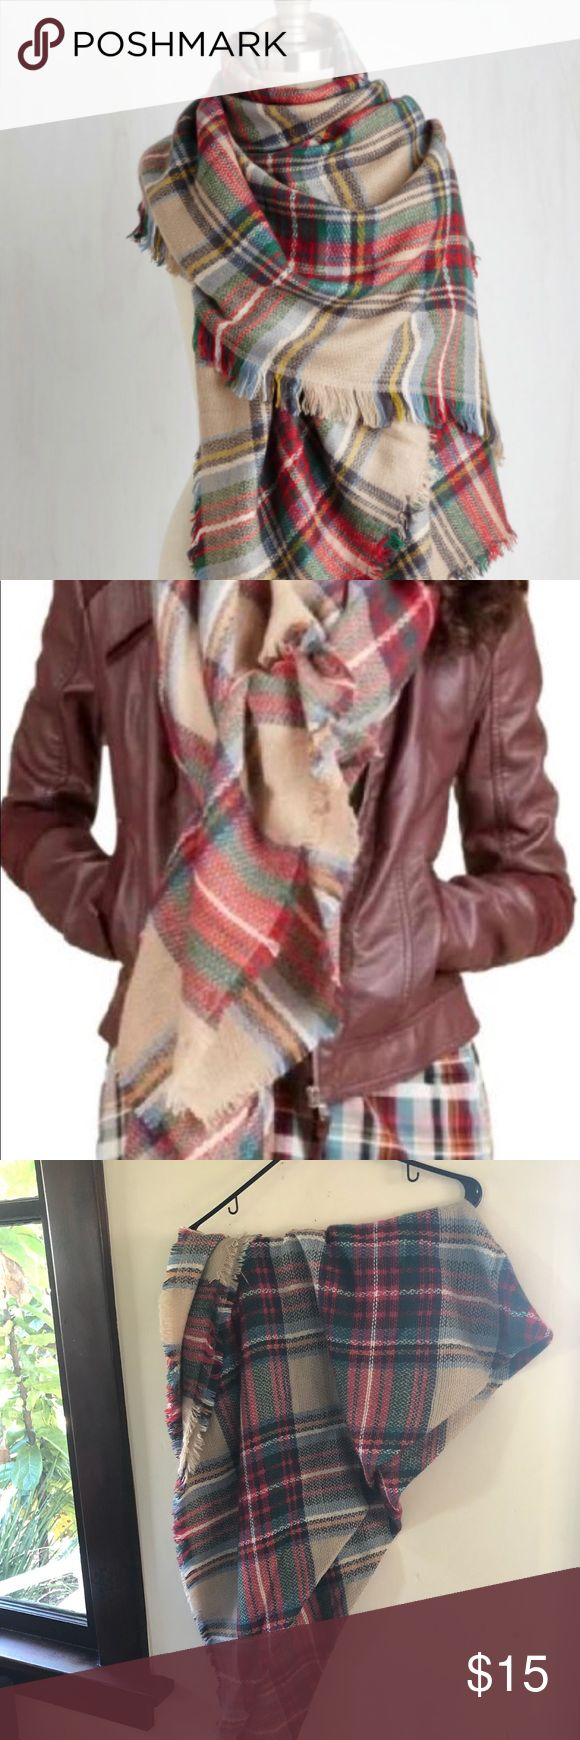 ModCloth plaid blanket scarf Perfect condition- never worn. So cute and versatile Modcloth Accessories Scarves & Wraps